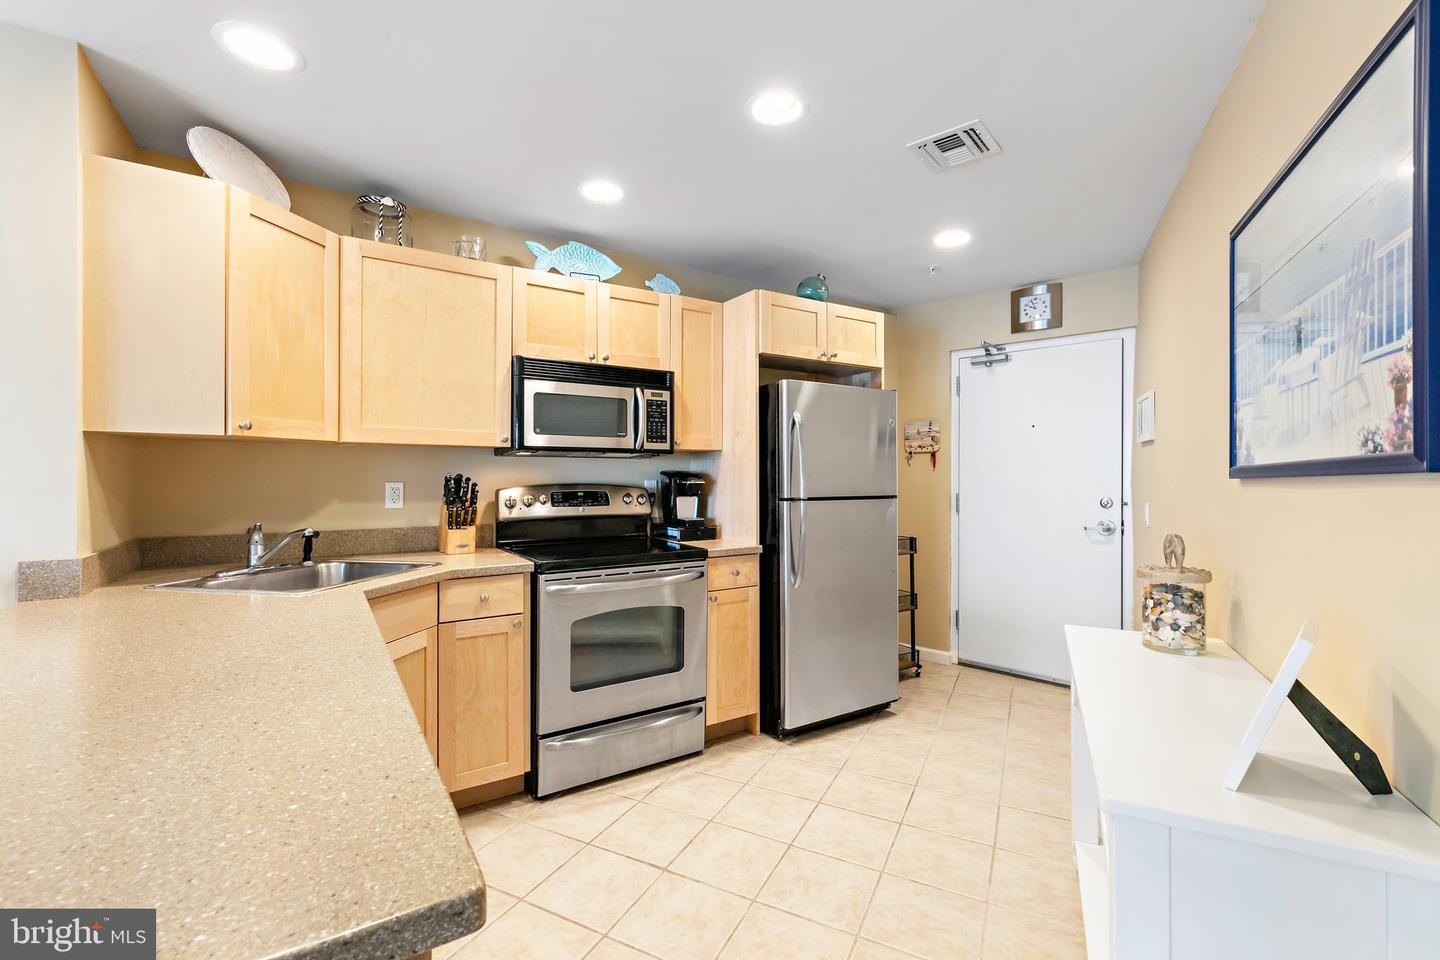 1810 CENTRAL AVE #2 - Picture 6